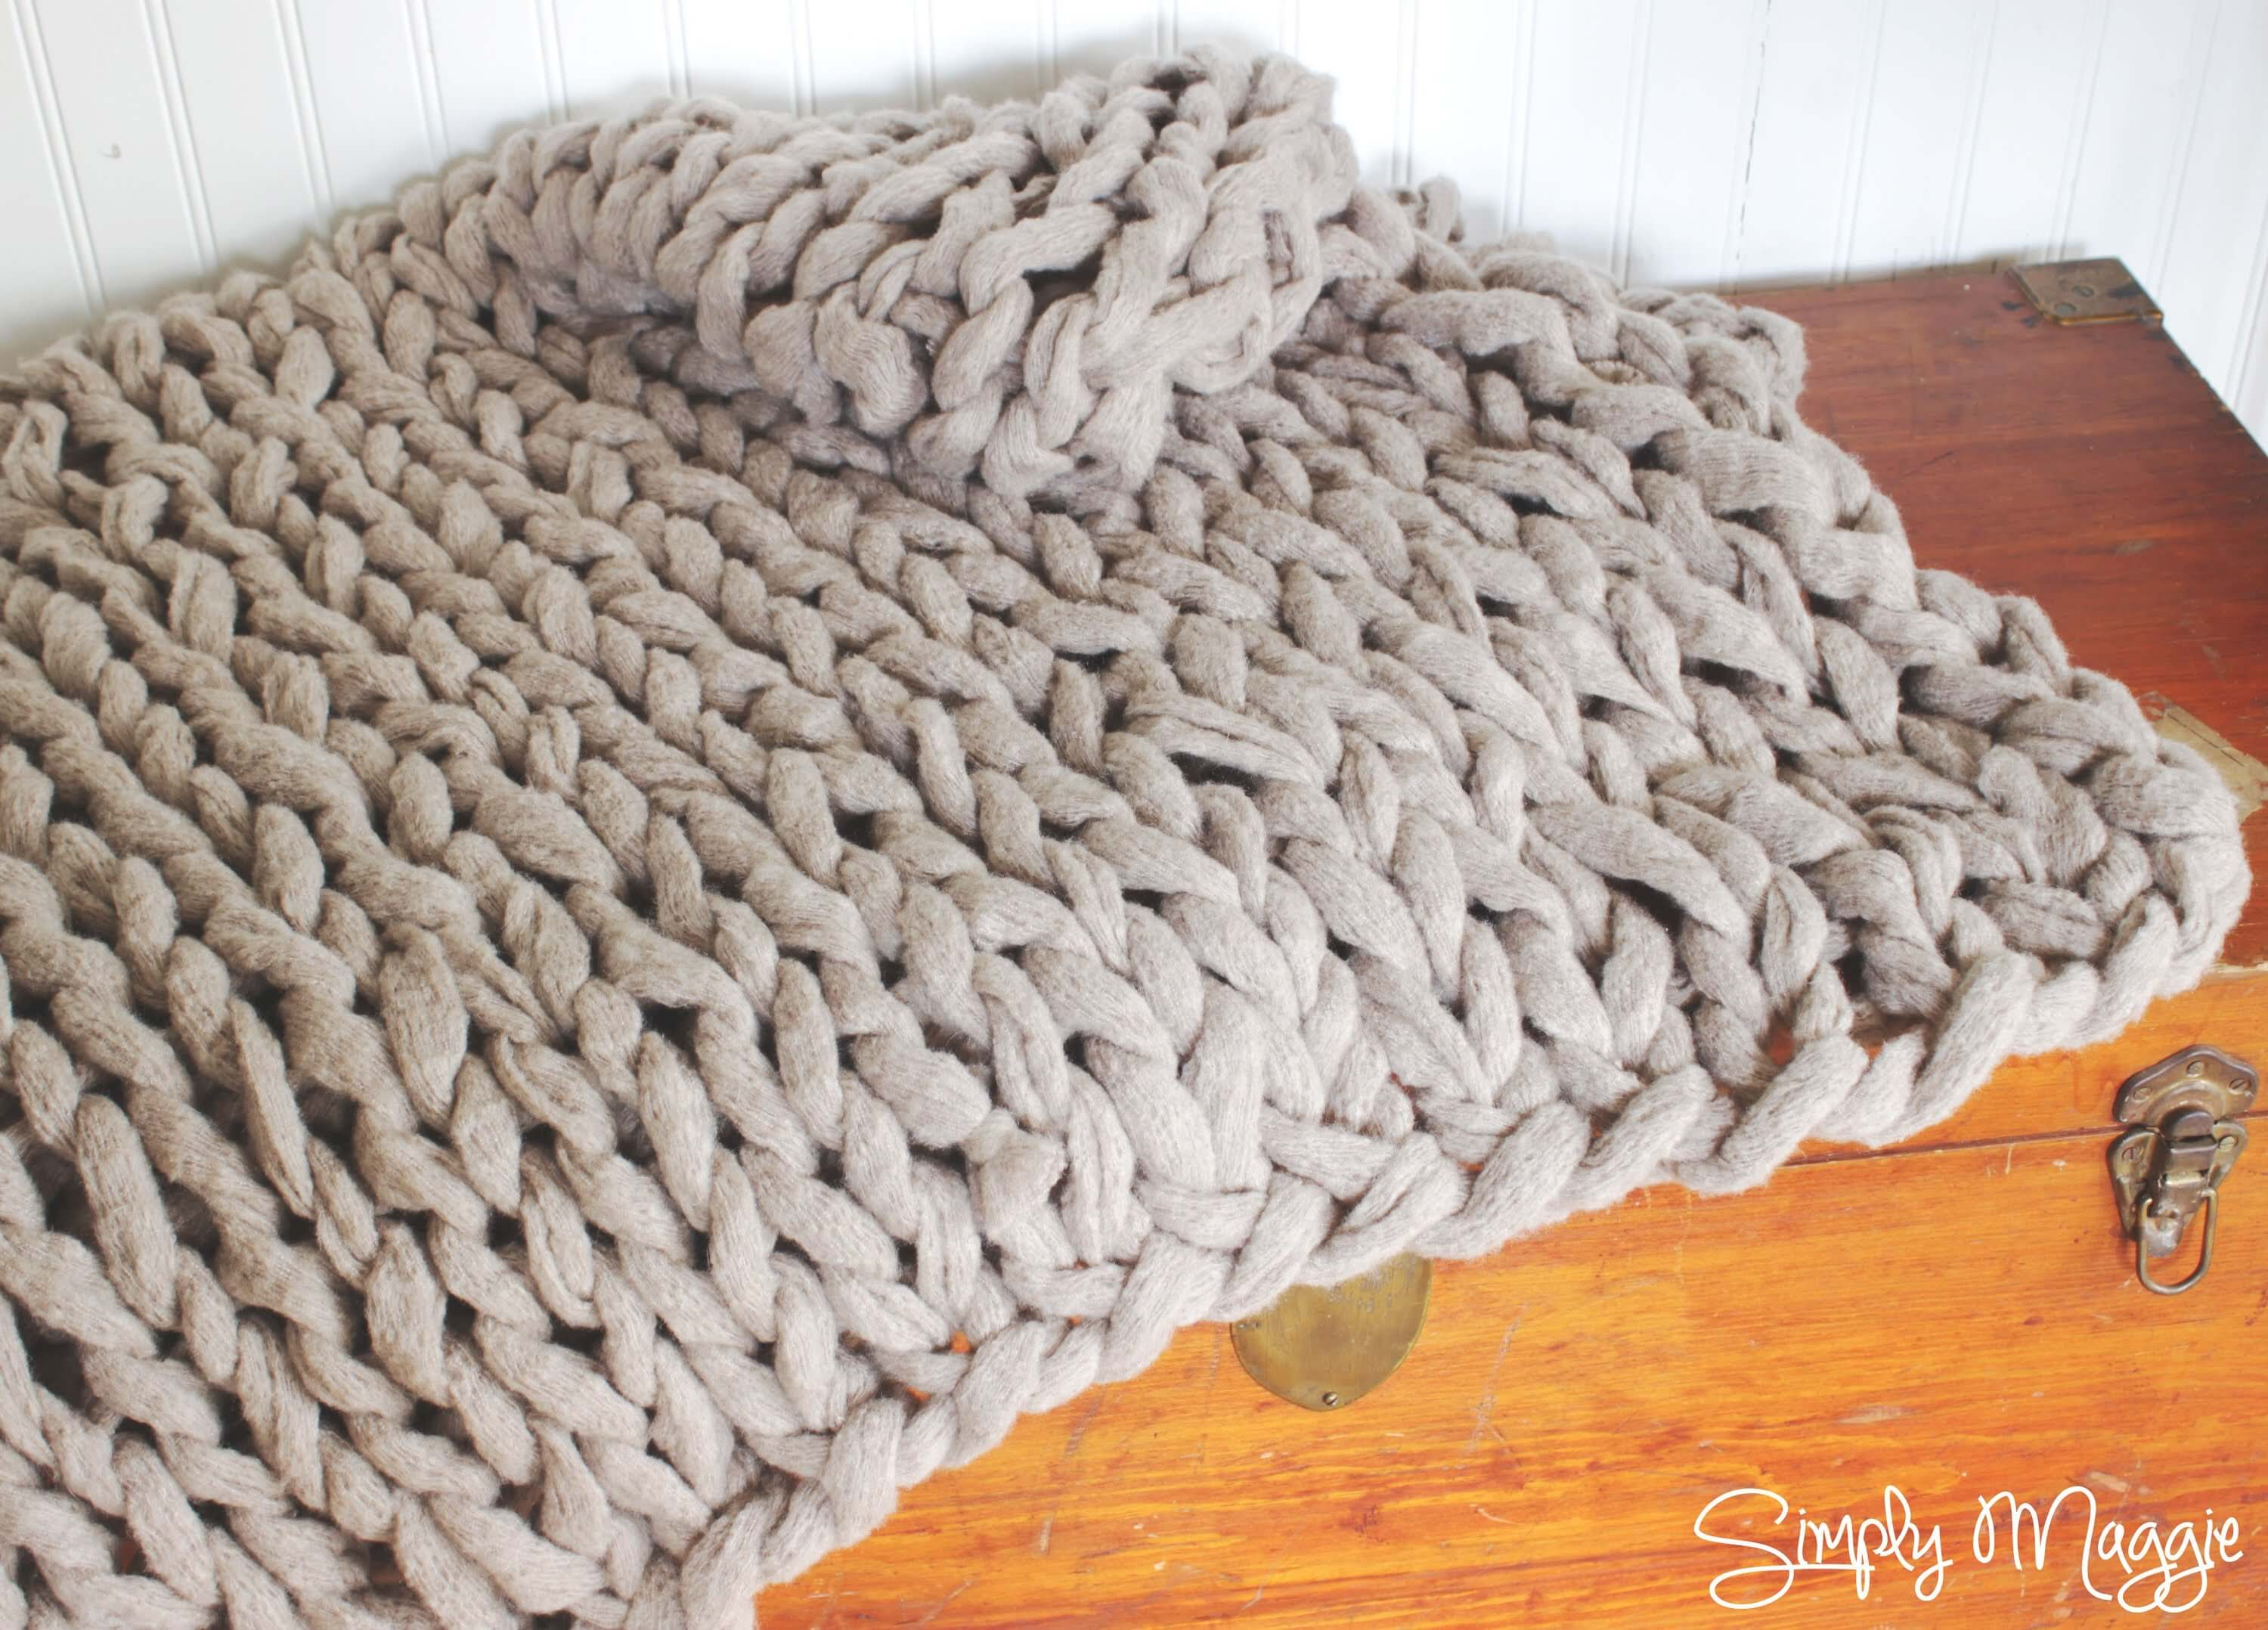 Easy Knit Blanket How To : Arm Knitting A Blanket - The Spinners Husband